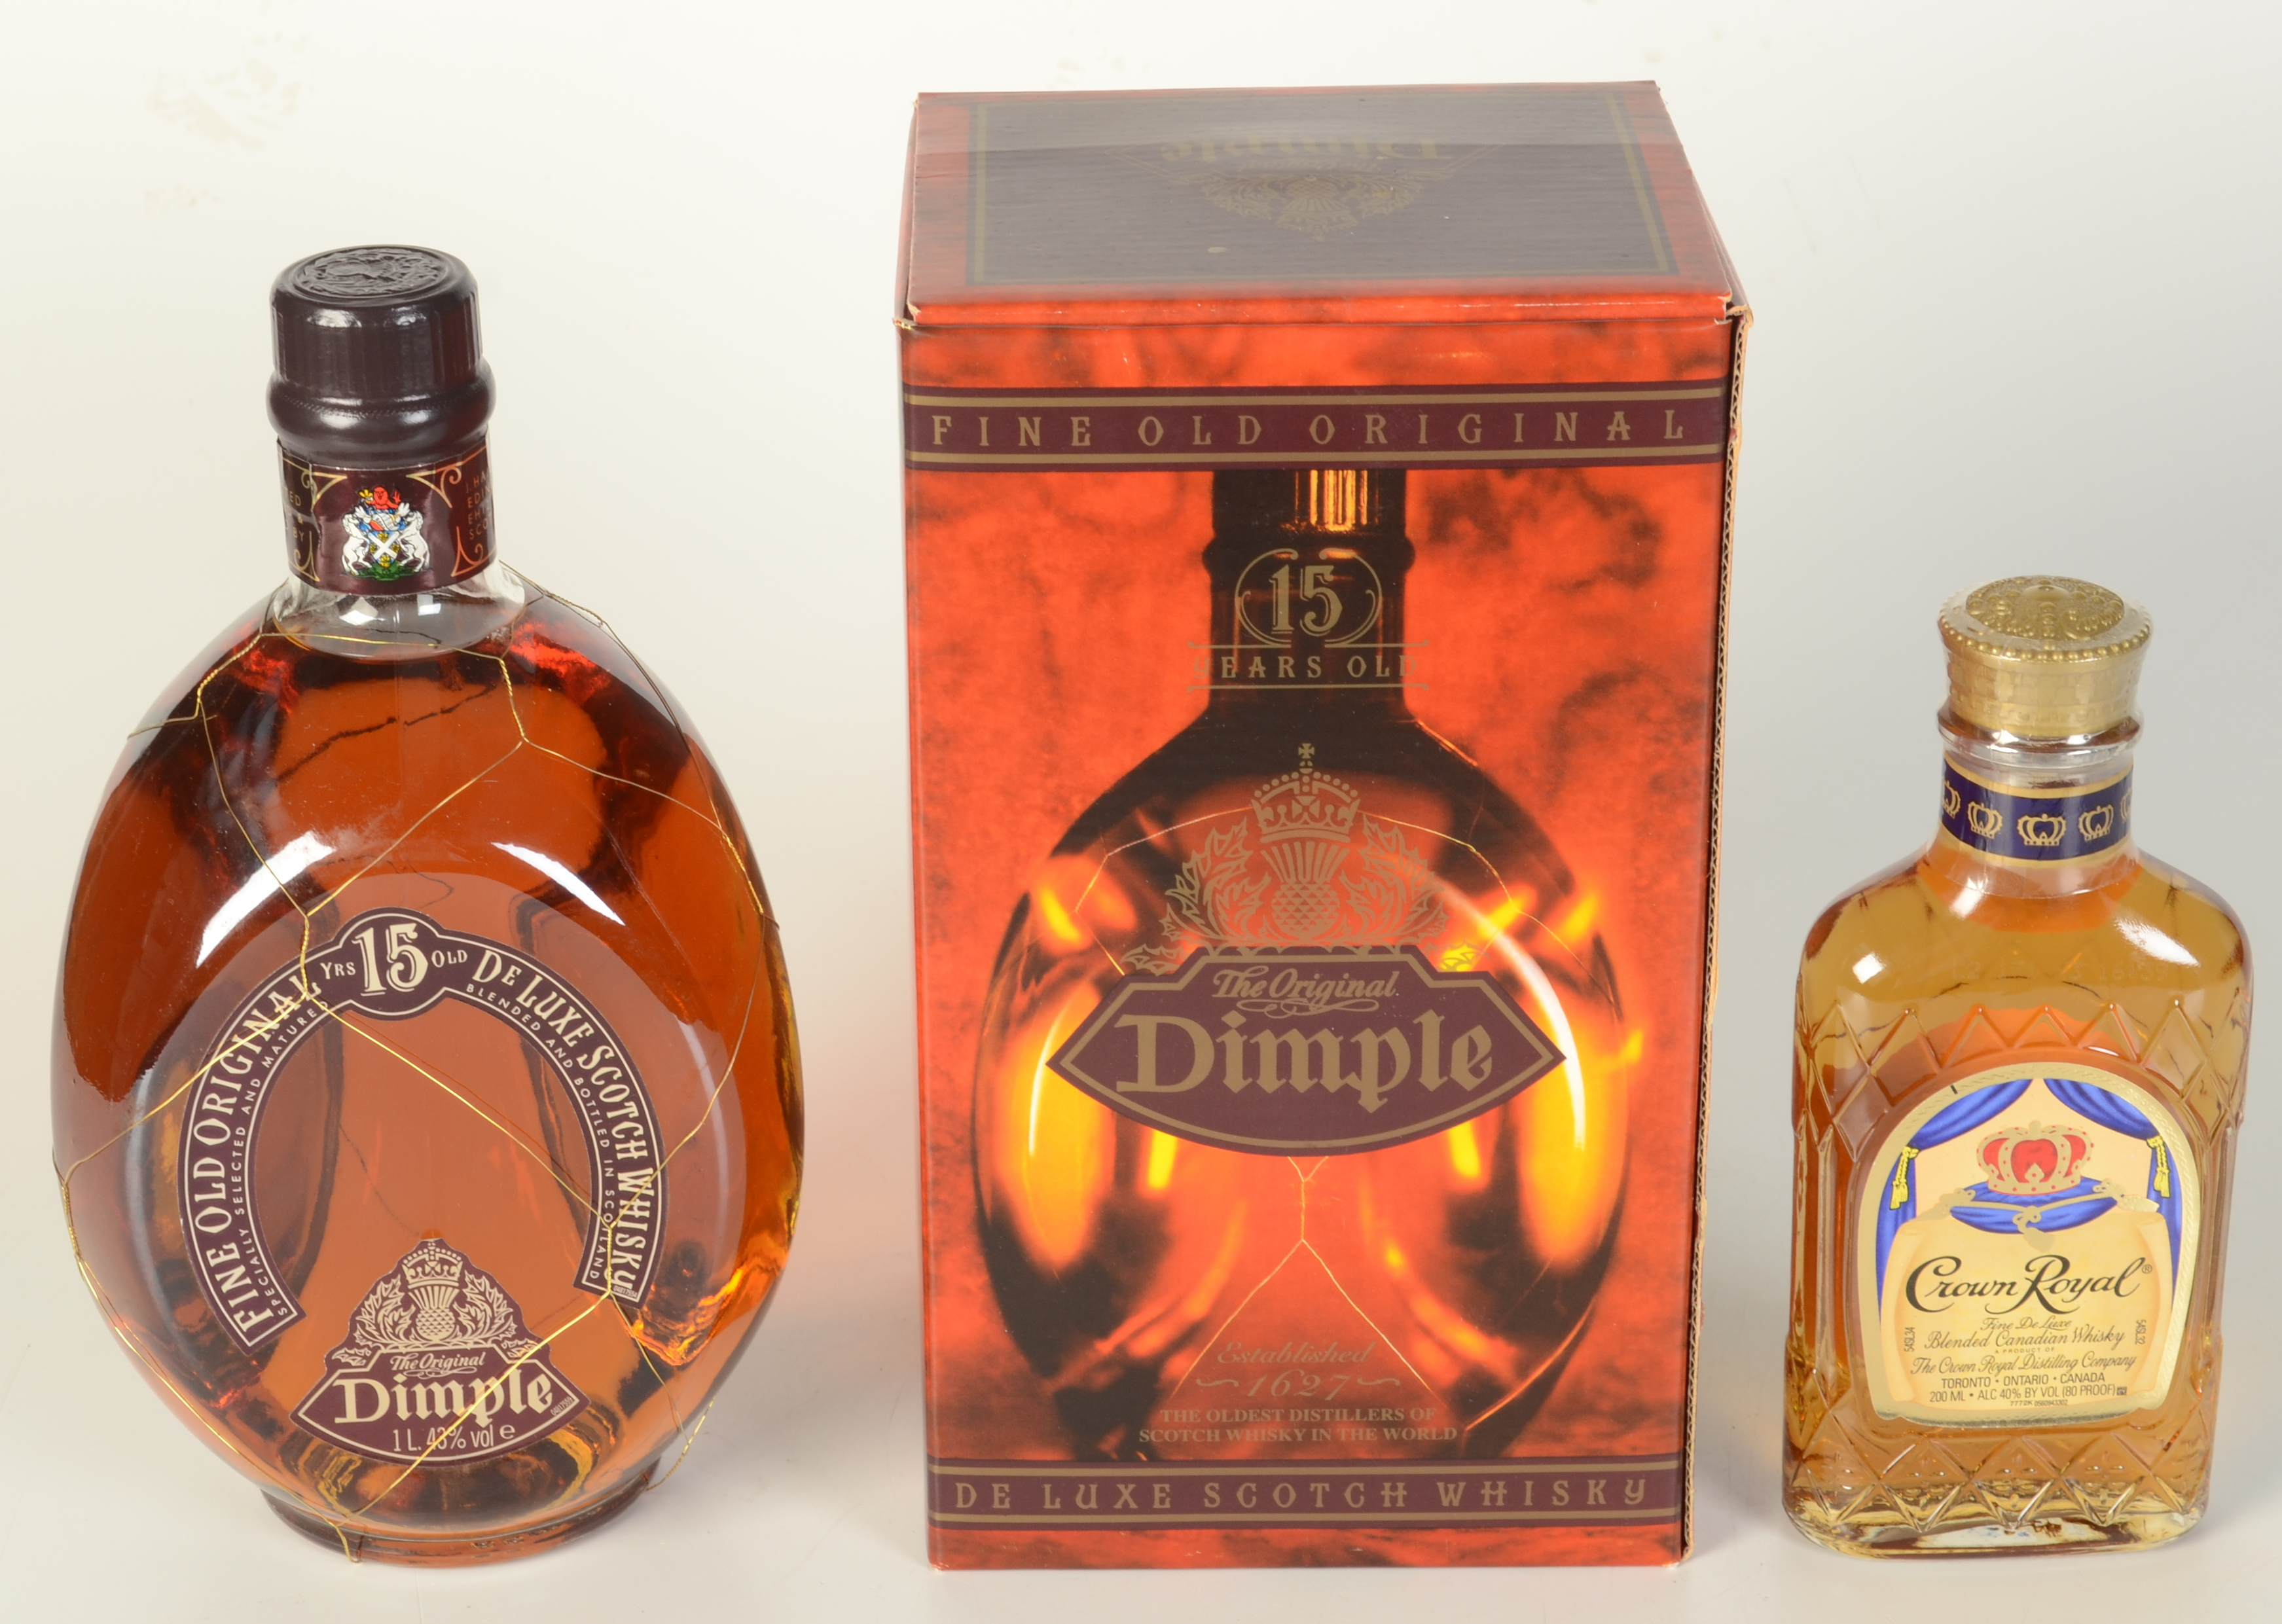 Lot 57 - A Dimple de Luxe 15 year old Scotch whisky, in original box, 1 litre, 43% vol,